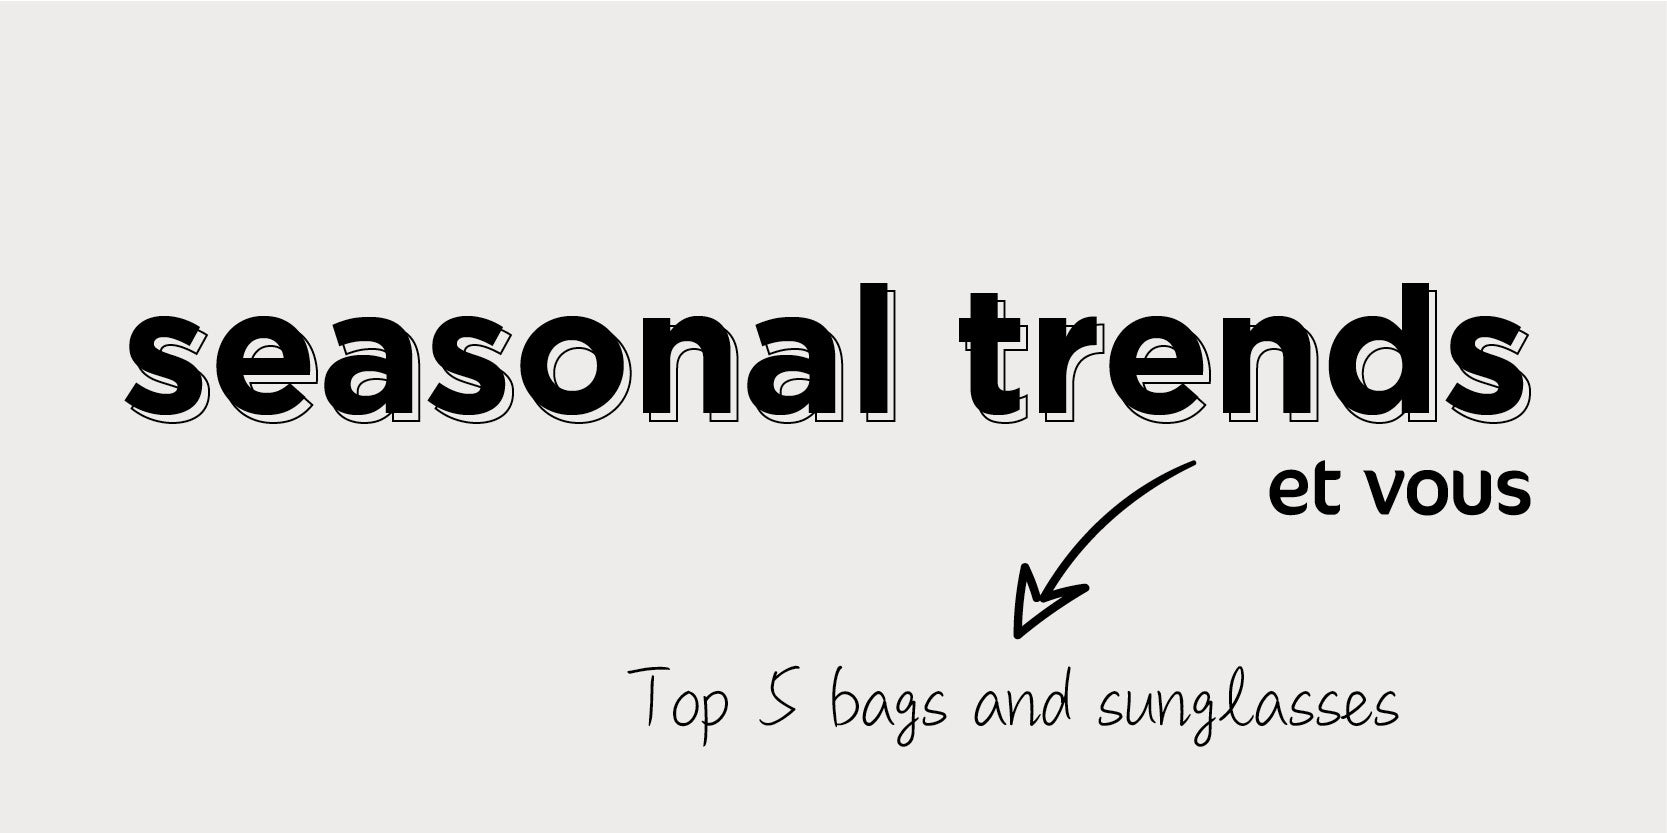 Seasonal trends heading